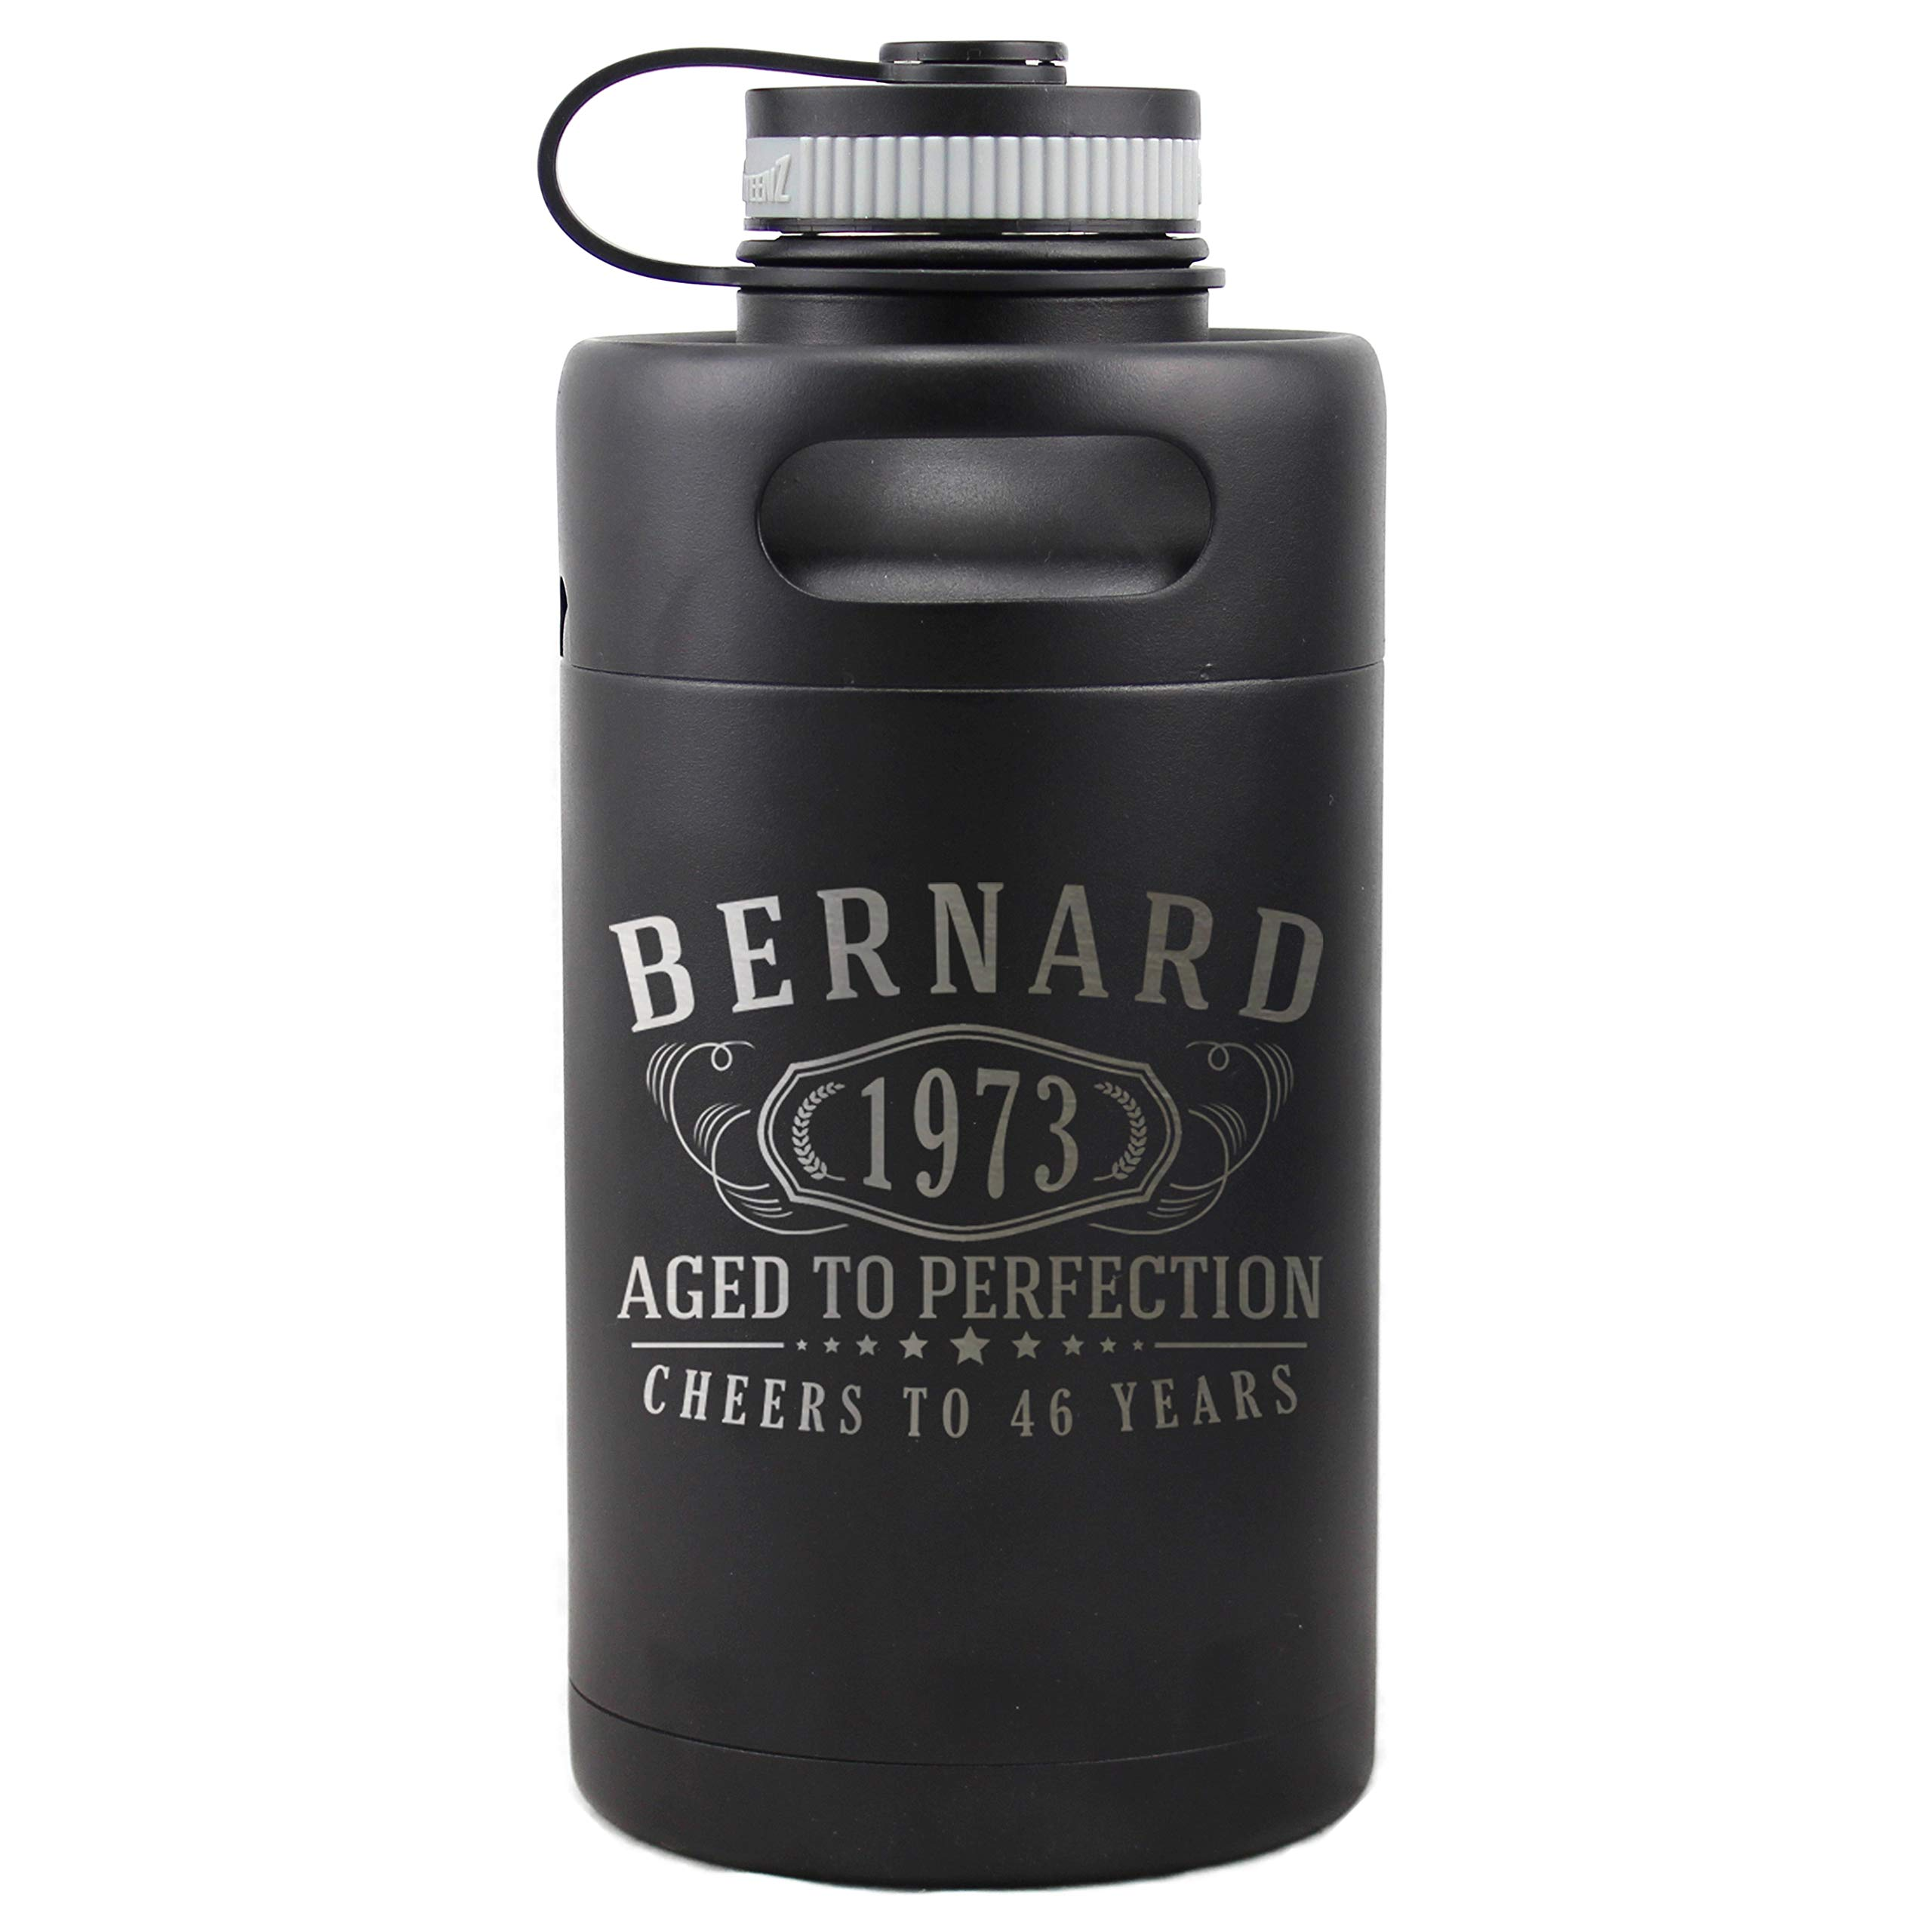 Personalized Etched Insulated Beer Growler 64oz Mini Keg for Birthday Gifts (Matte Black) Canteen Thermos